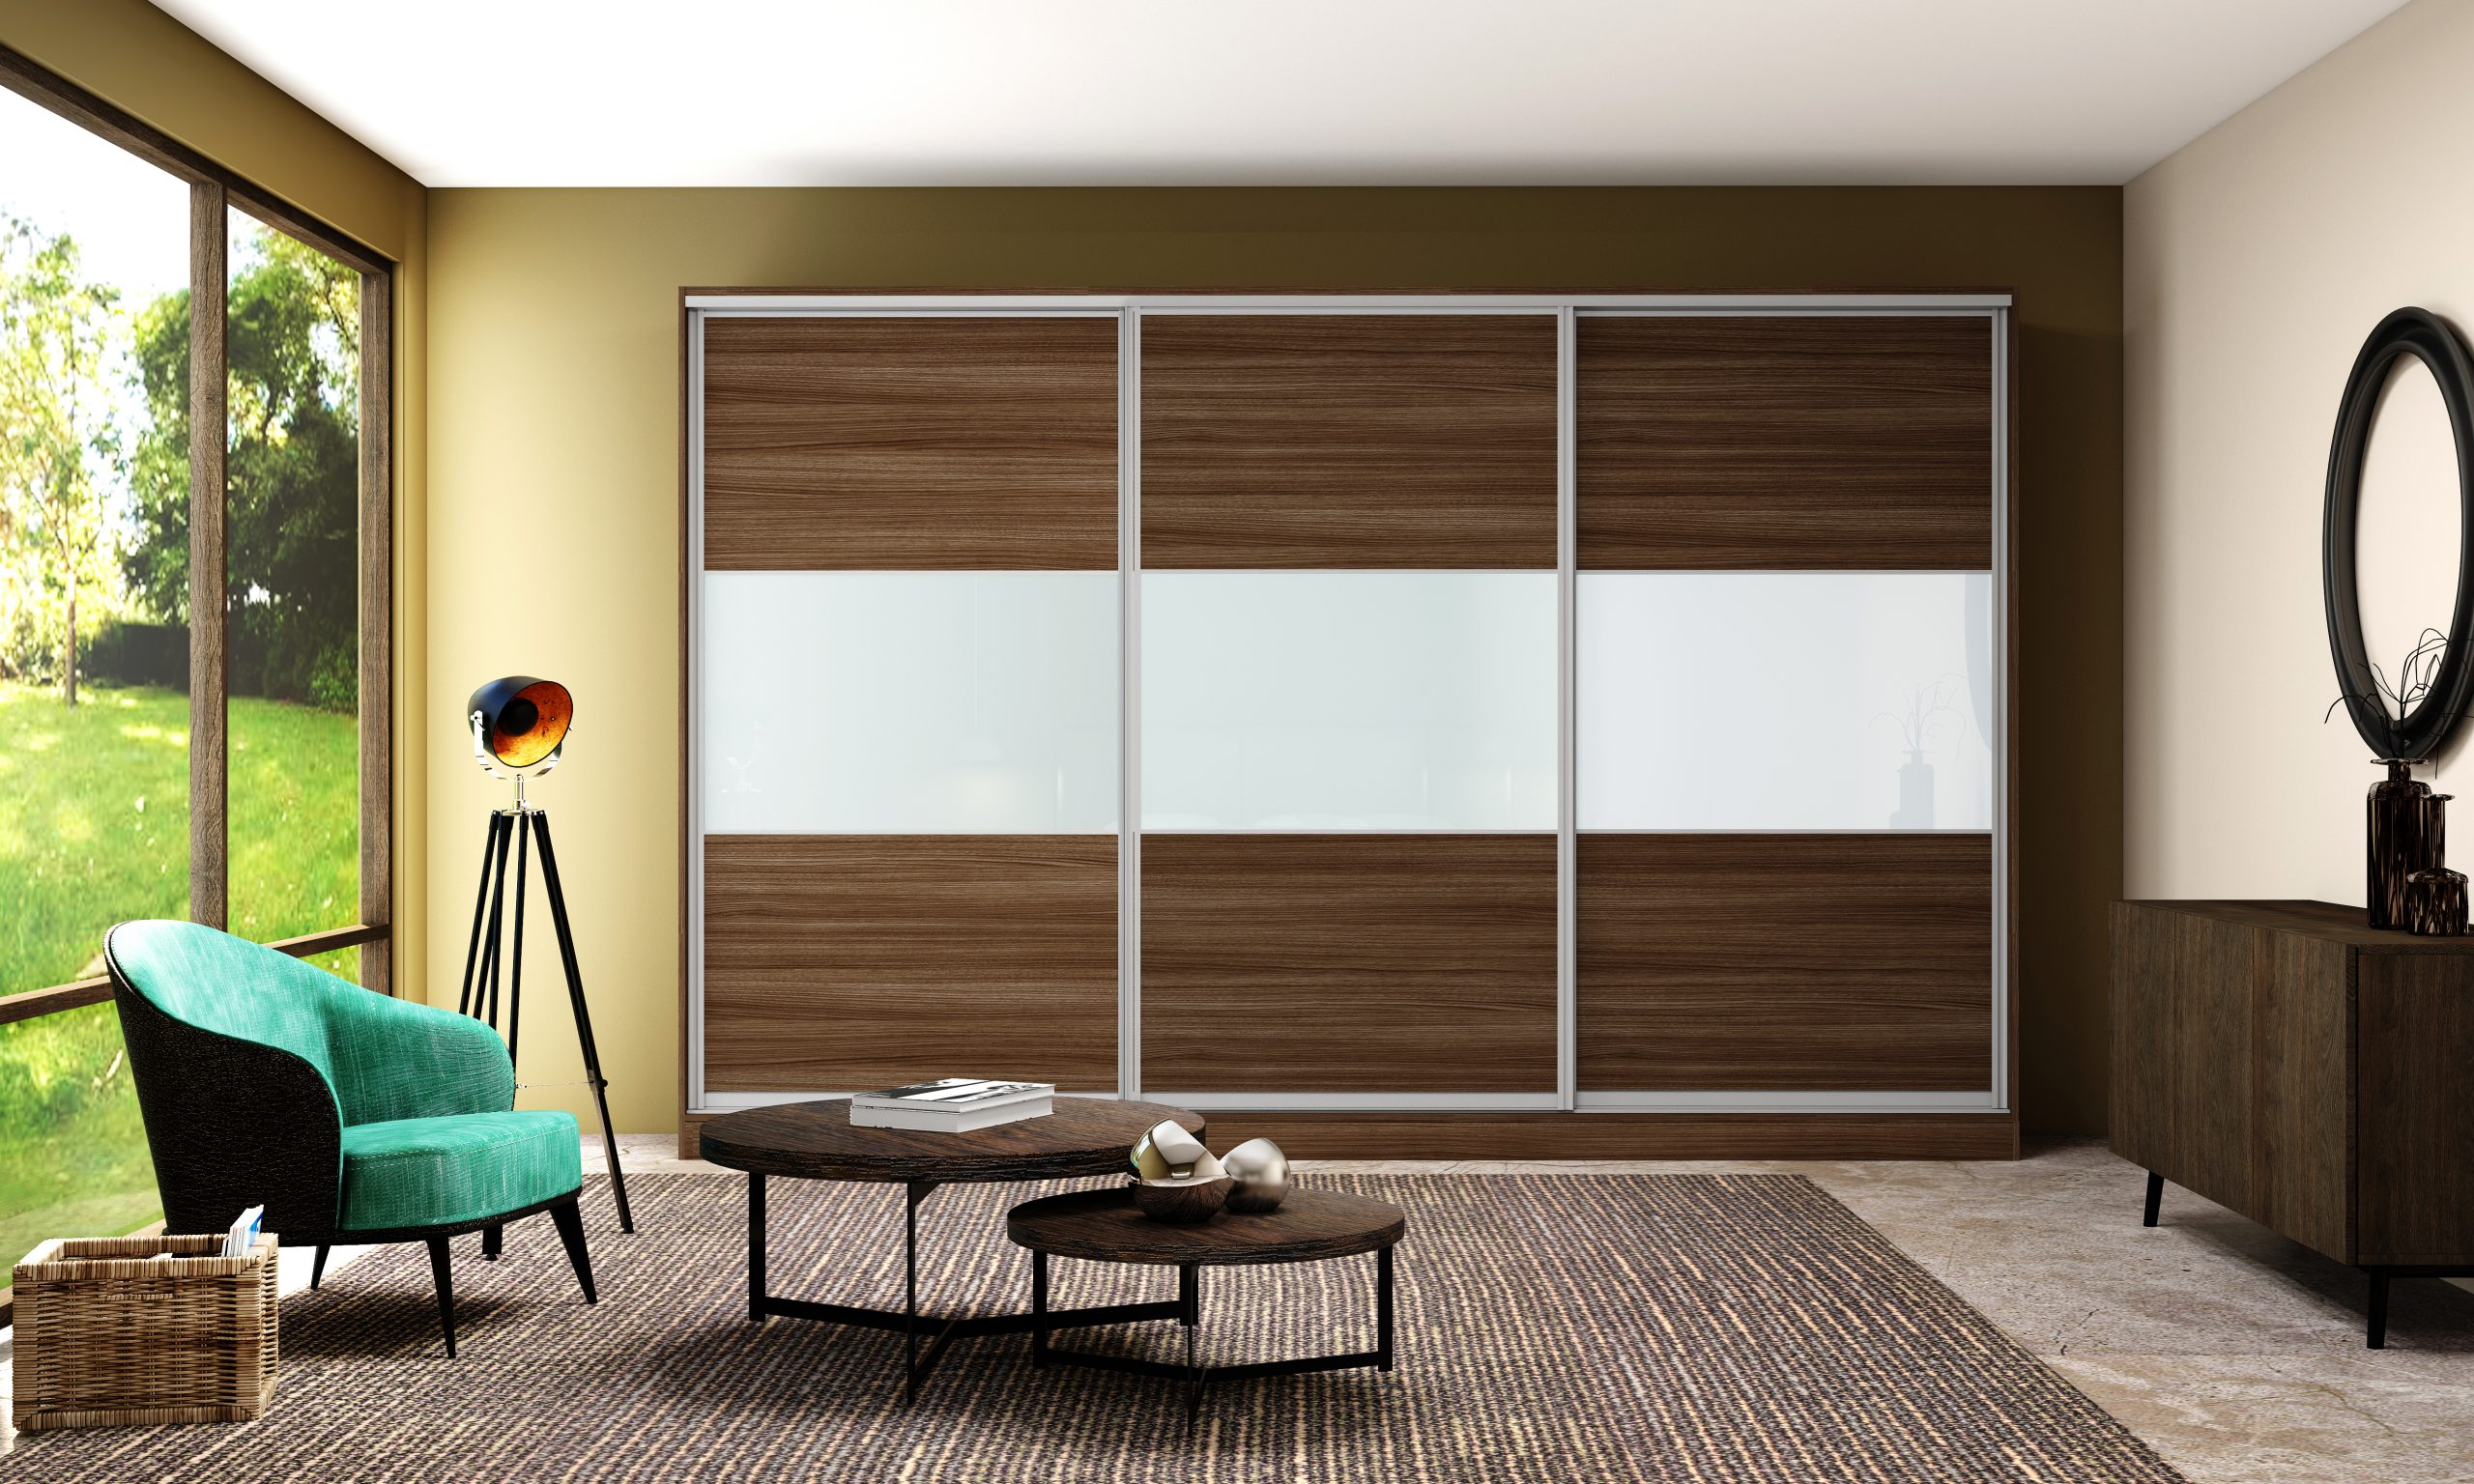 Built-in Sliding Fitted Wardrobe With Five Panels in Combination of Mirror and Oak Grain